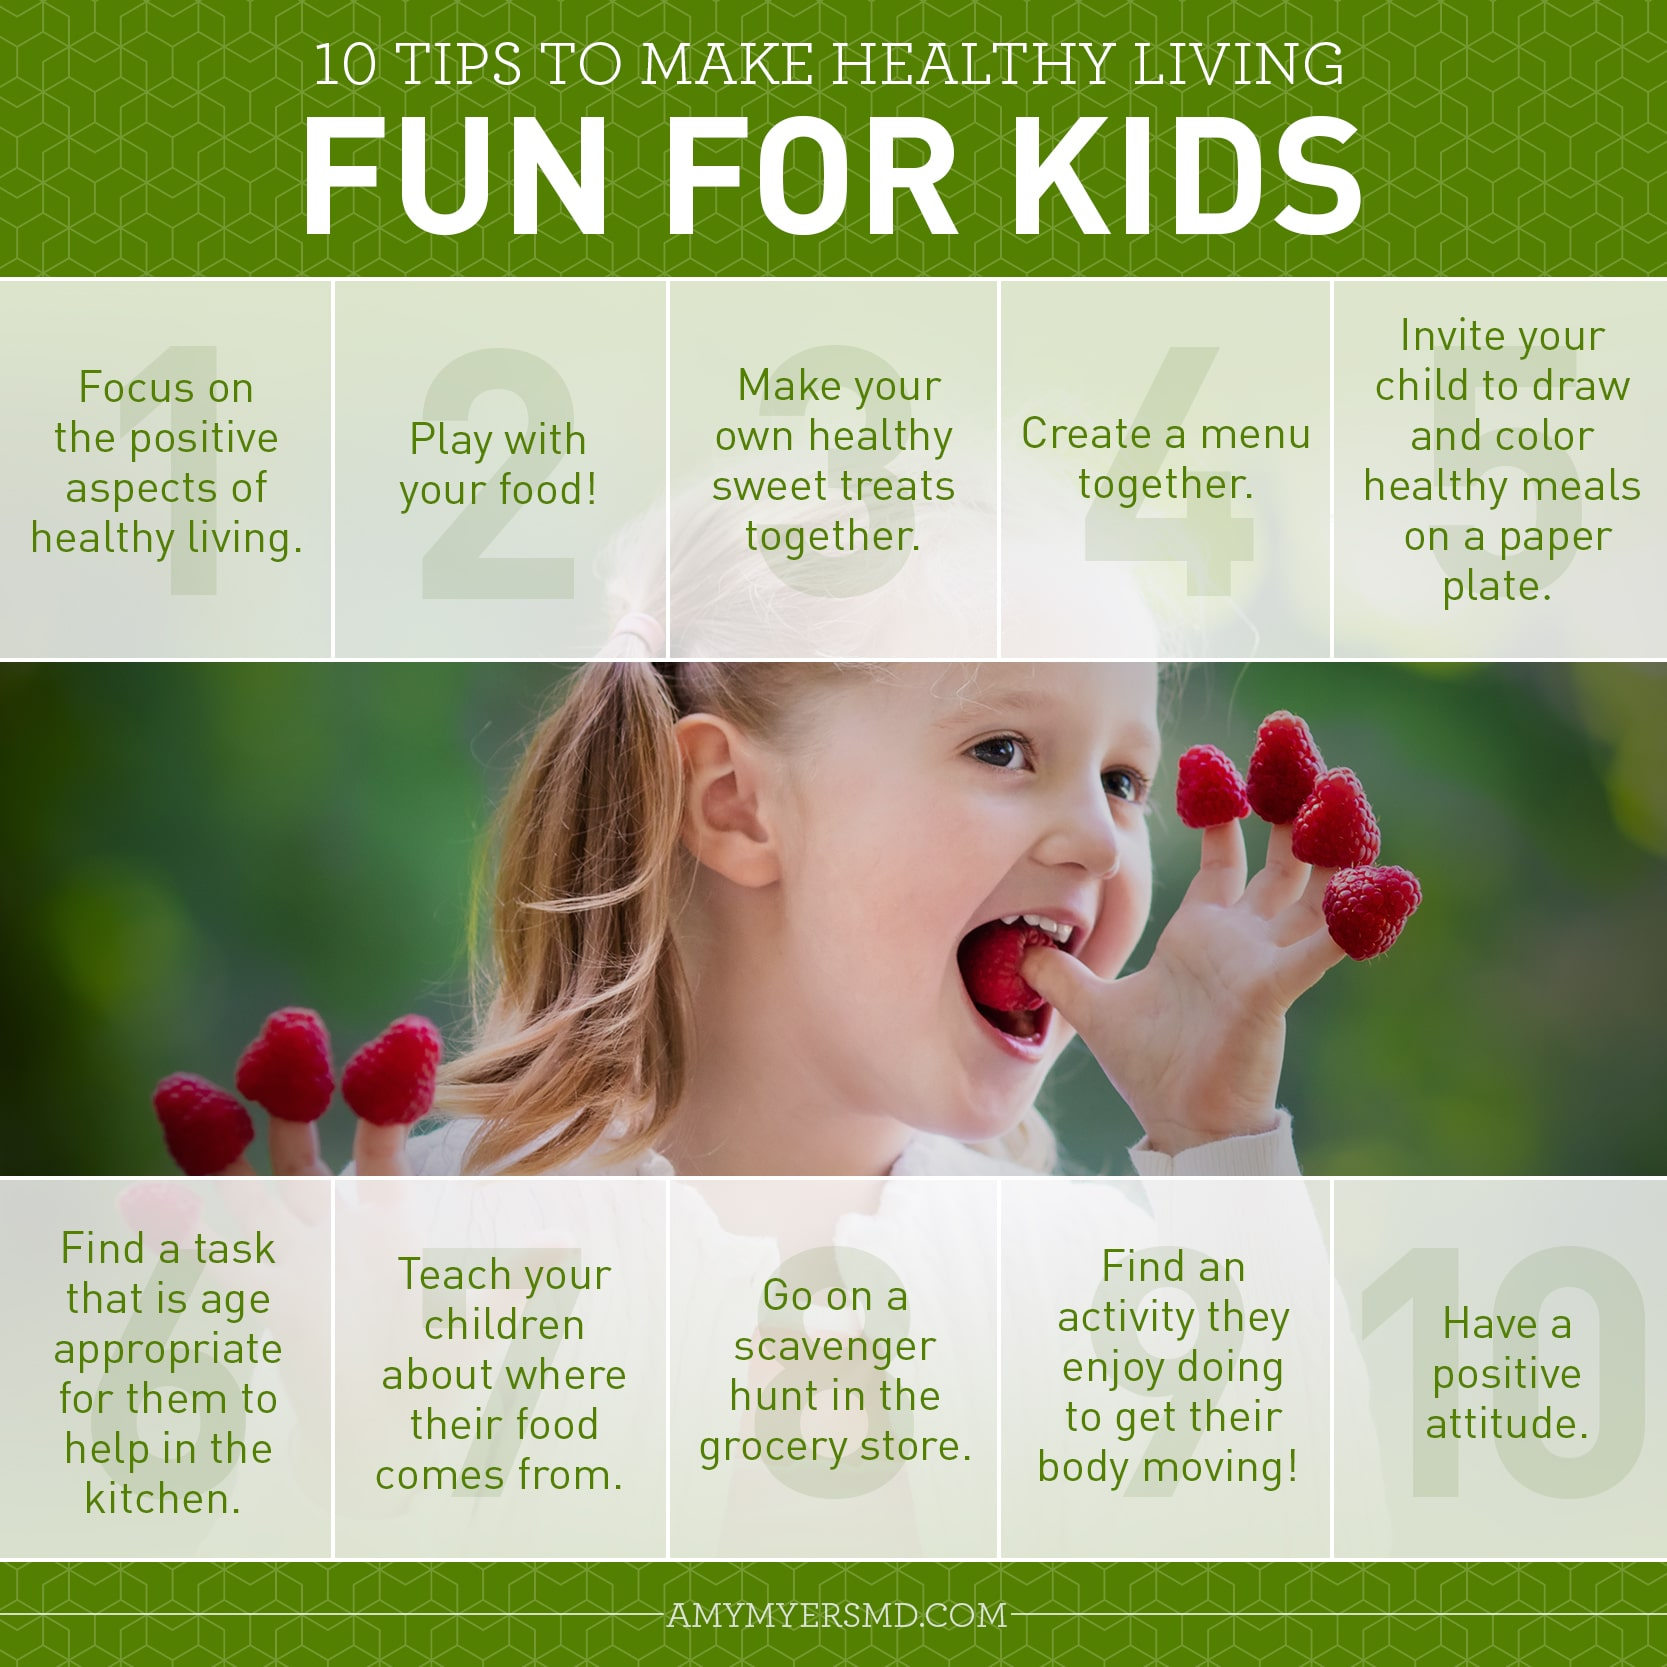 10 Tips to Make Healthy Living Fun for Kids - Infographic - Amy Myers MD